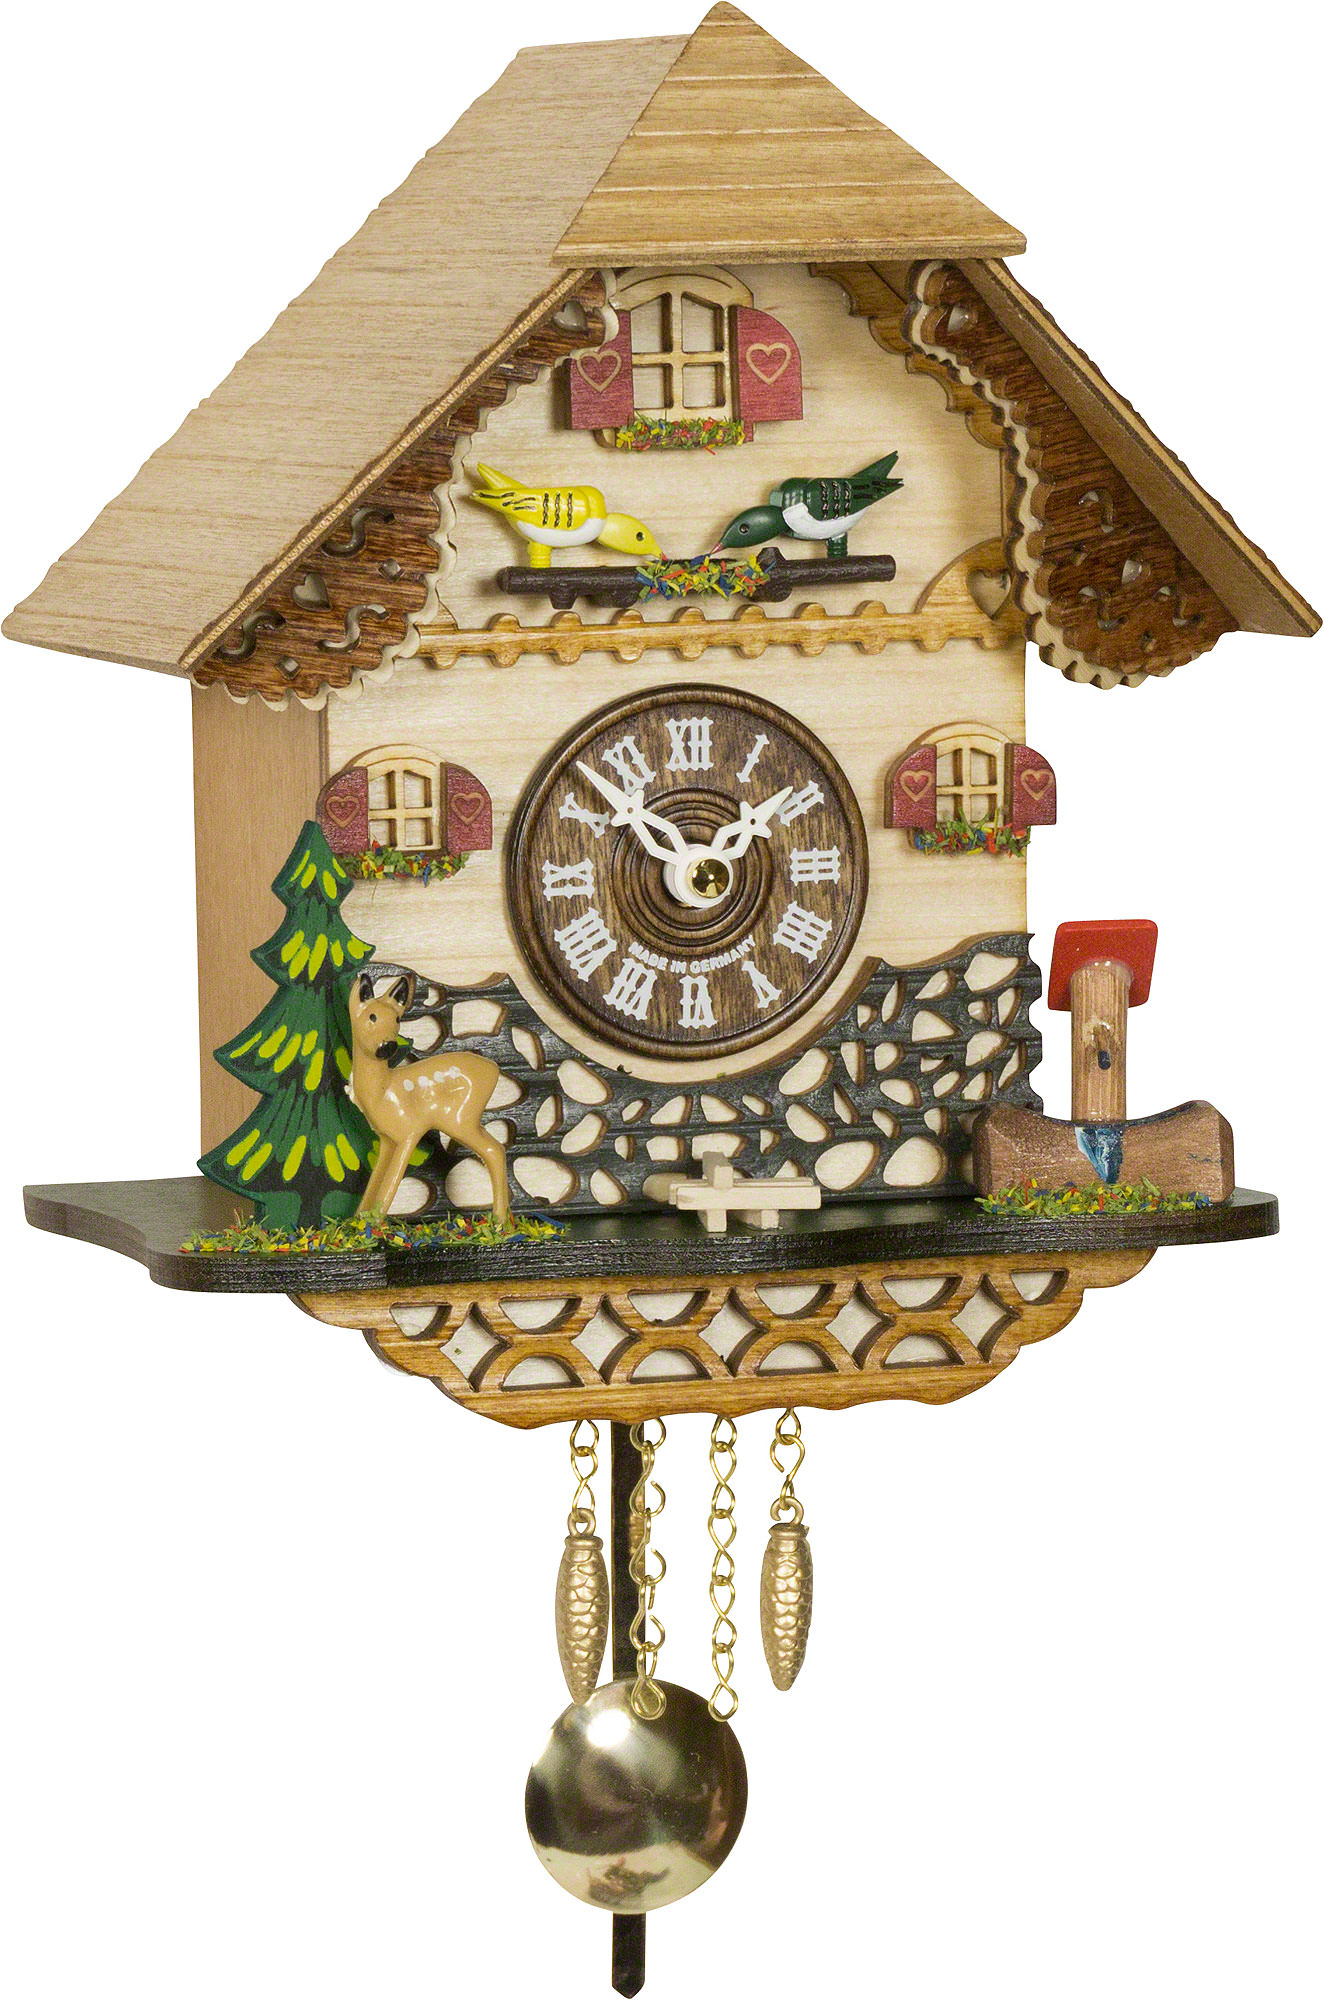 Cuckoo clock quartz movement black forest pendulum clock style 18cm by trenkle uhren 2059 pq - Cuckoo clock pendulum ...